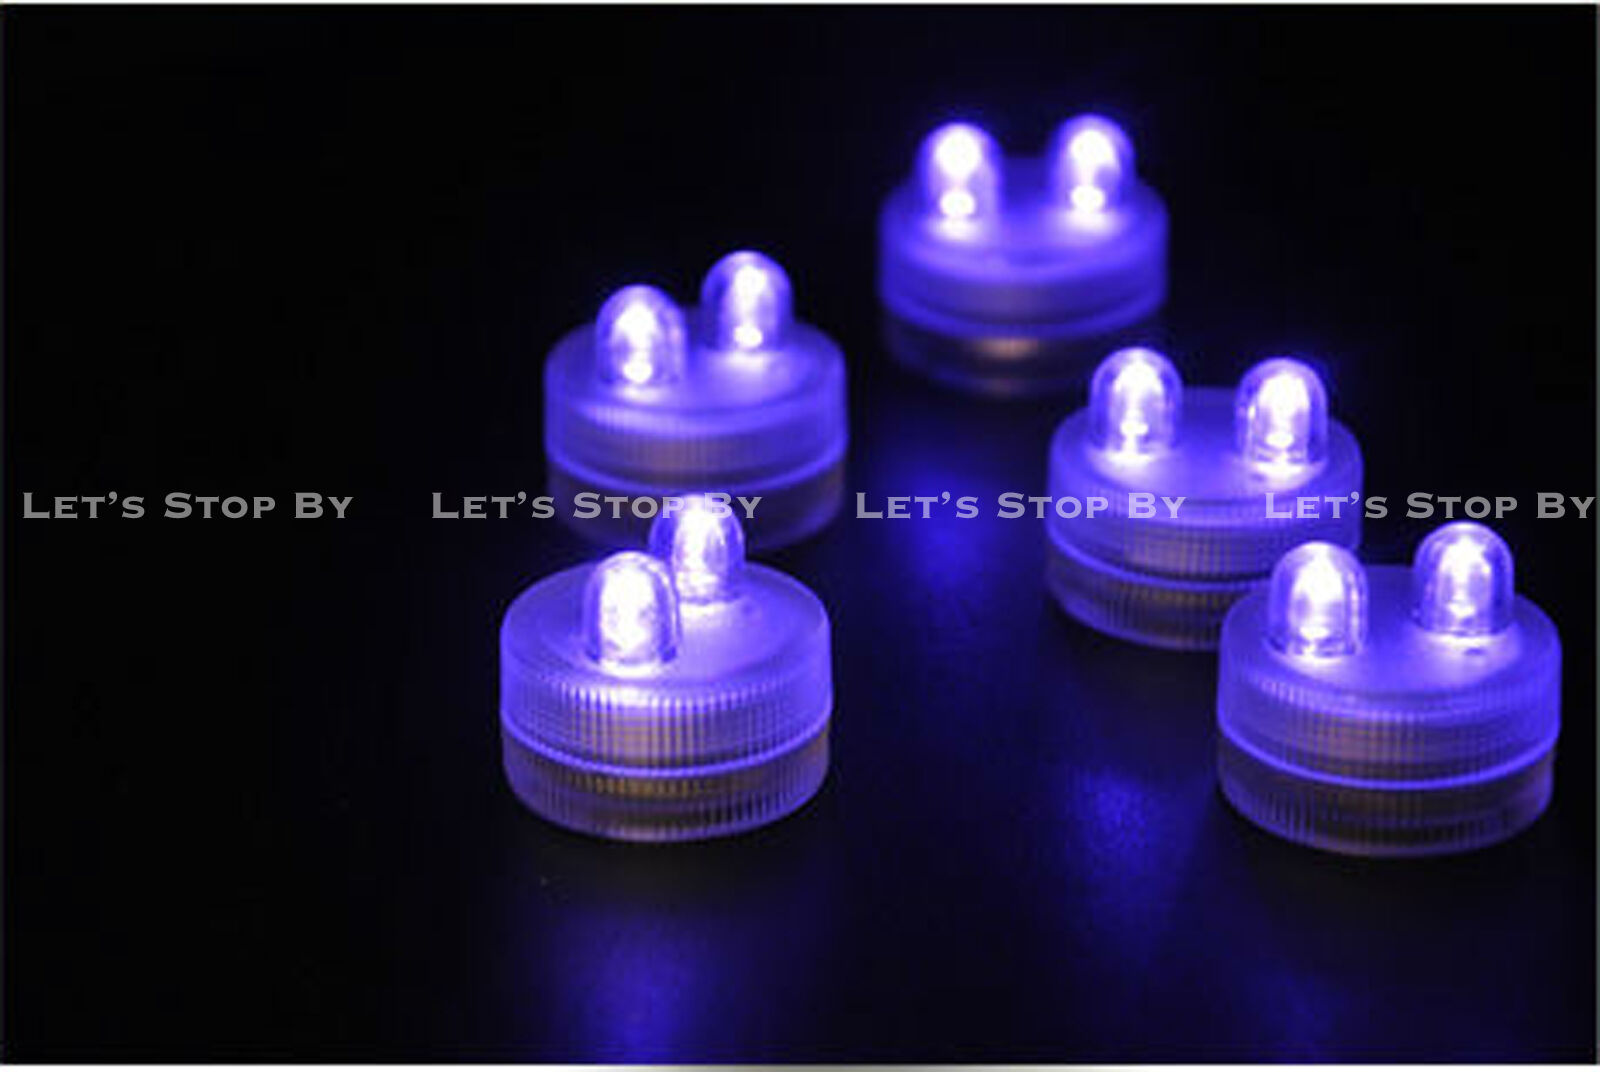 70 Violet Super Lumineux Double DEL Tea Light Submersible Floralyte Mariage Fête